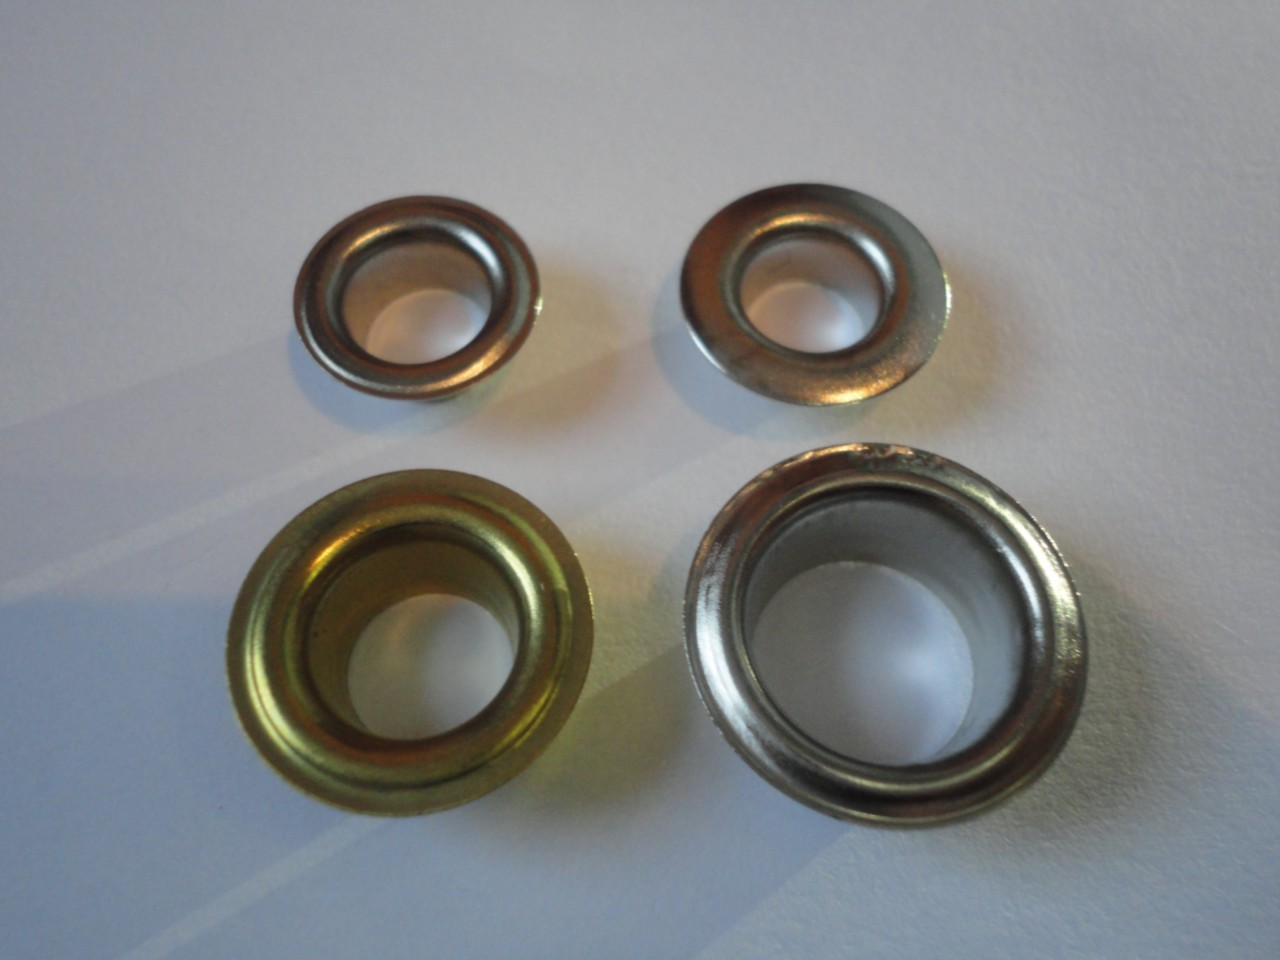 100-Large-Silver-or-Gold-Eyelets-in-either-9mm-10mm-11mm-12mm-or-15mm